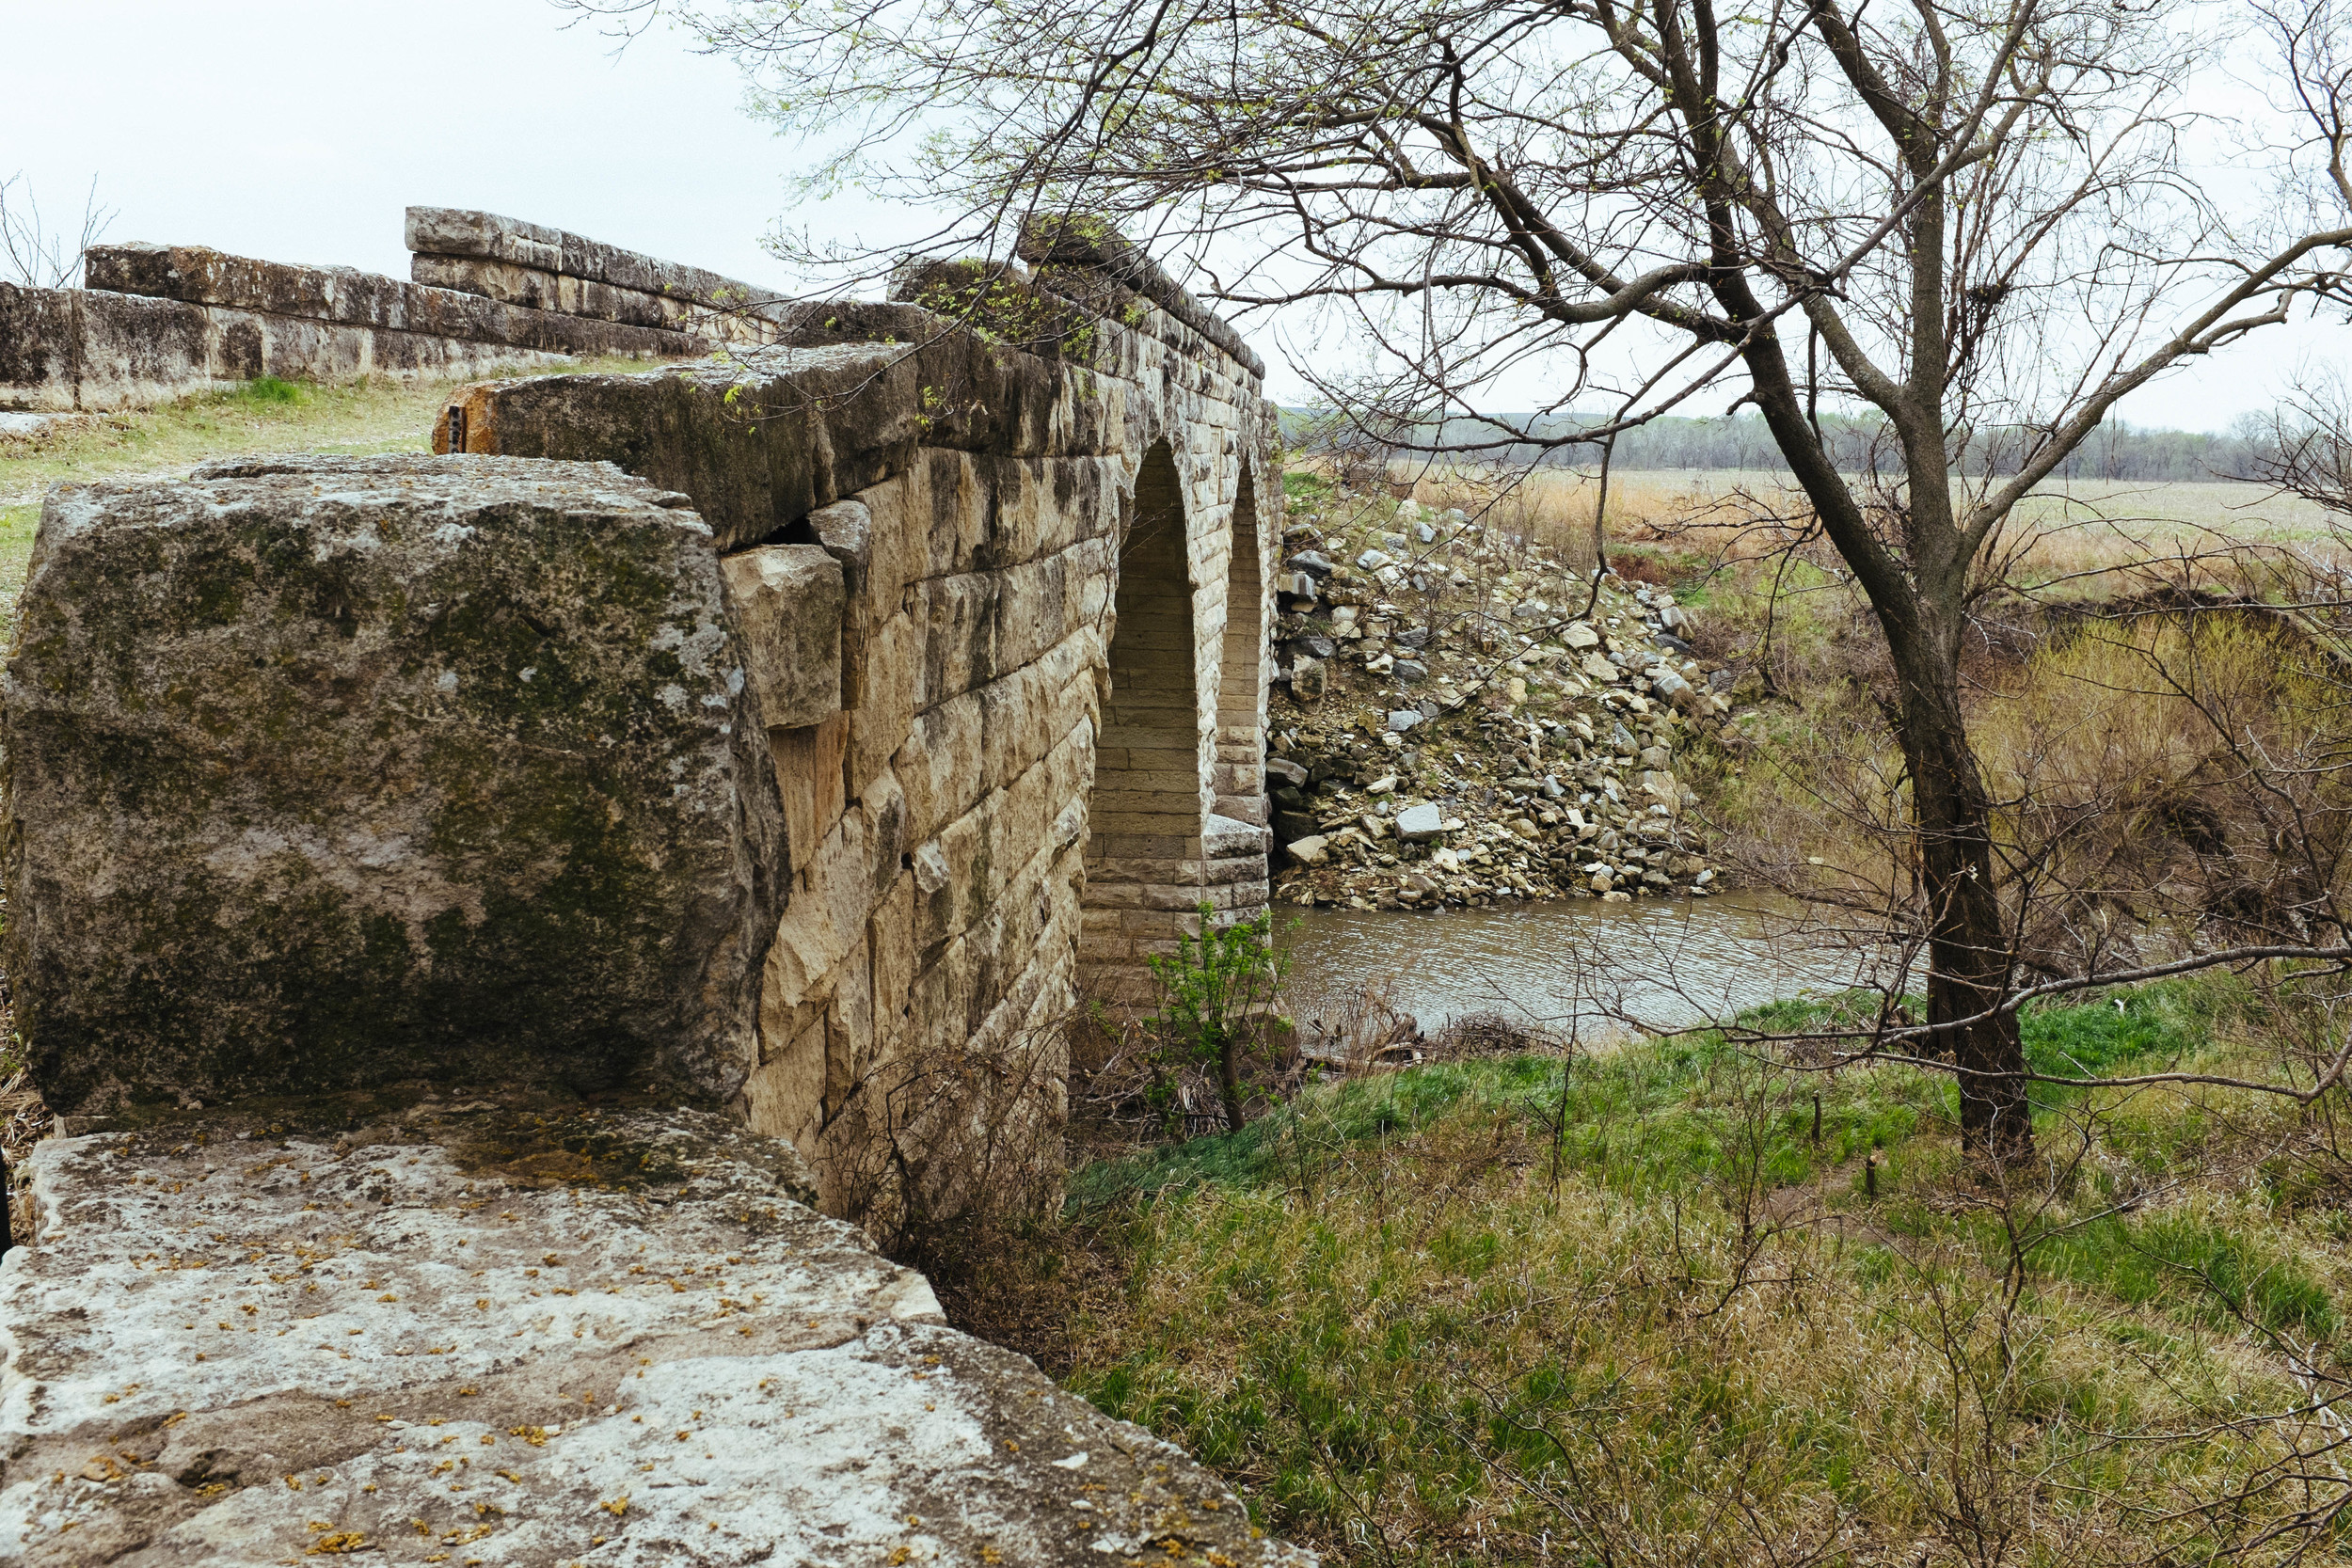 The stone bridge near Clements.